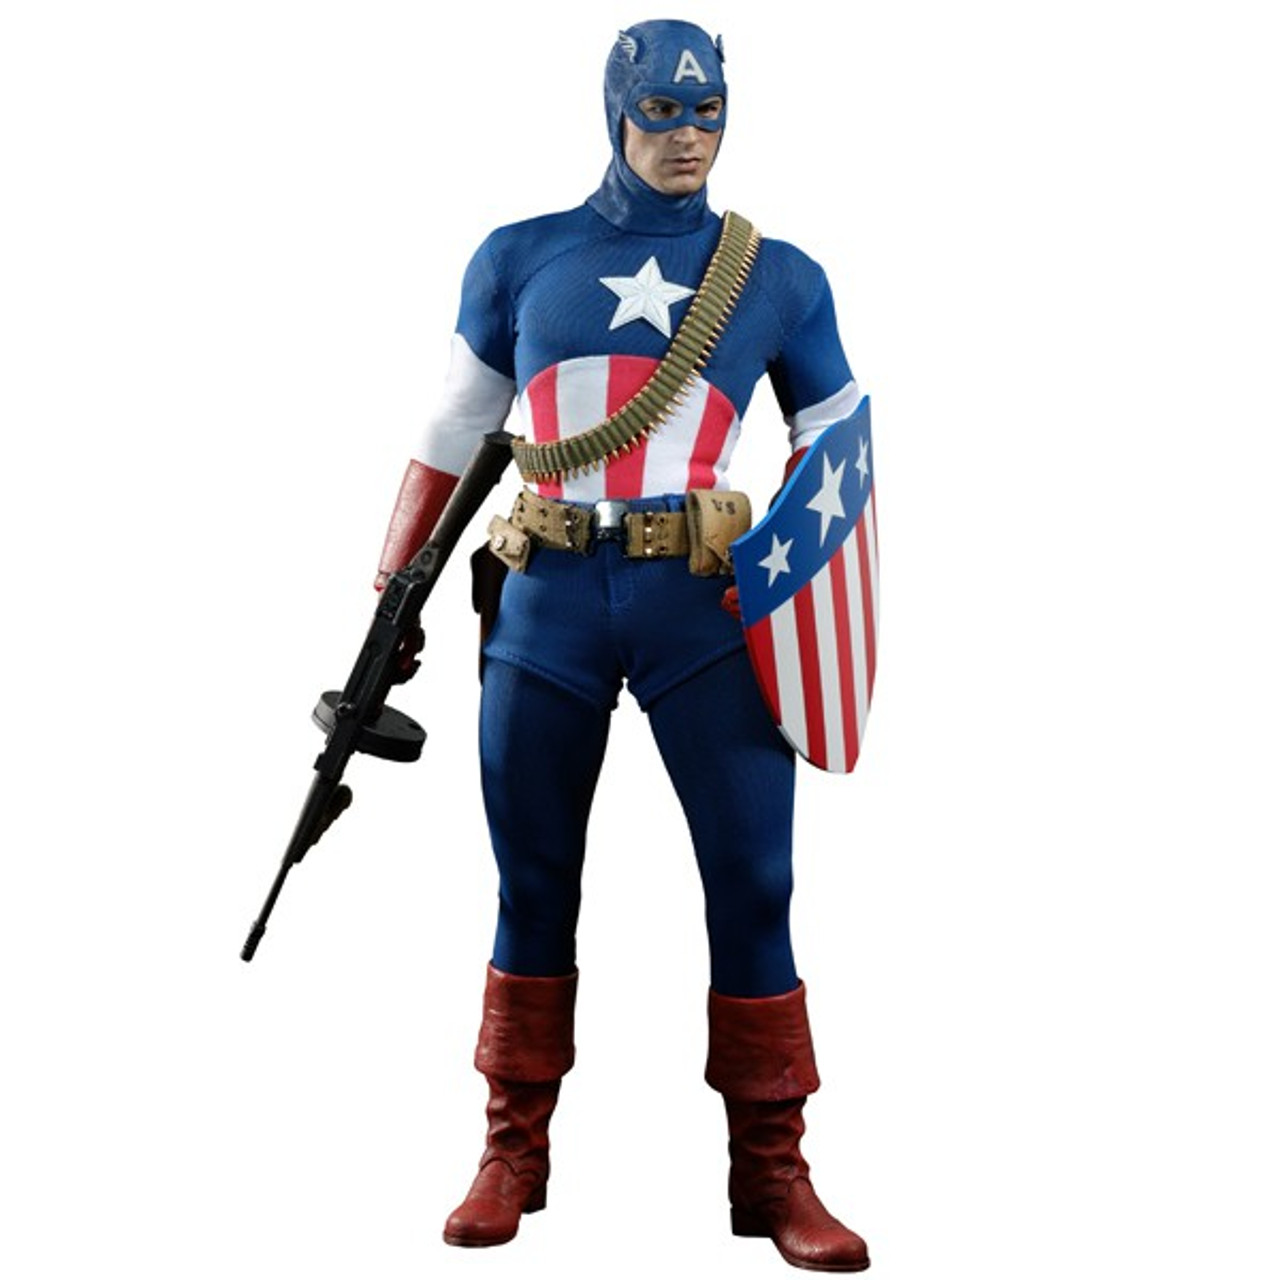 The First Avenger Movie Masterpiece Captain America Exclusive Collectible Figure [Star Spangled Man]